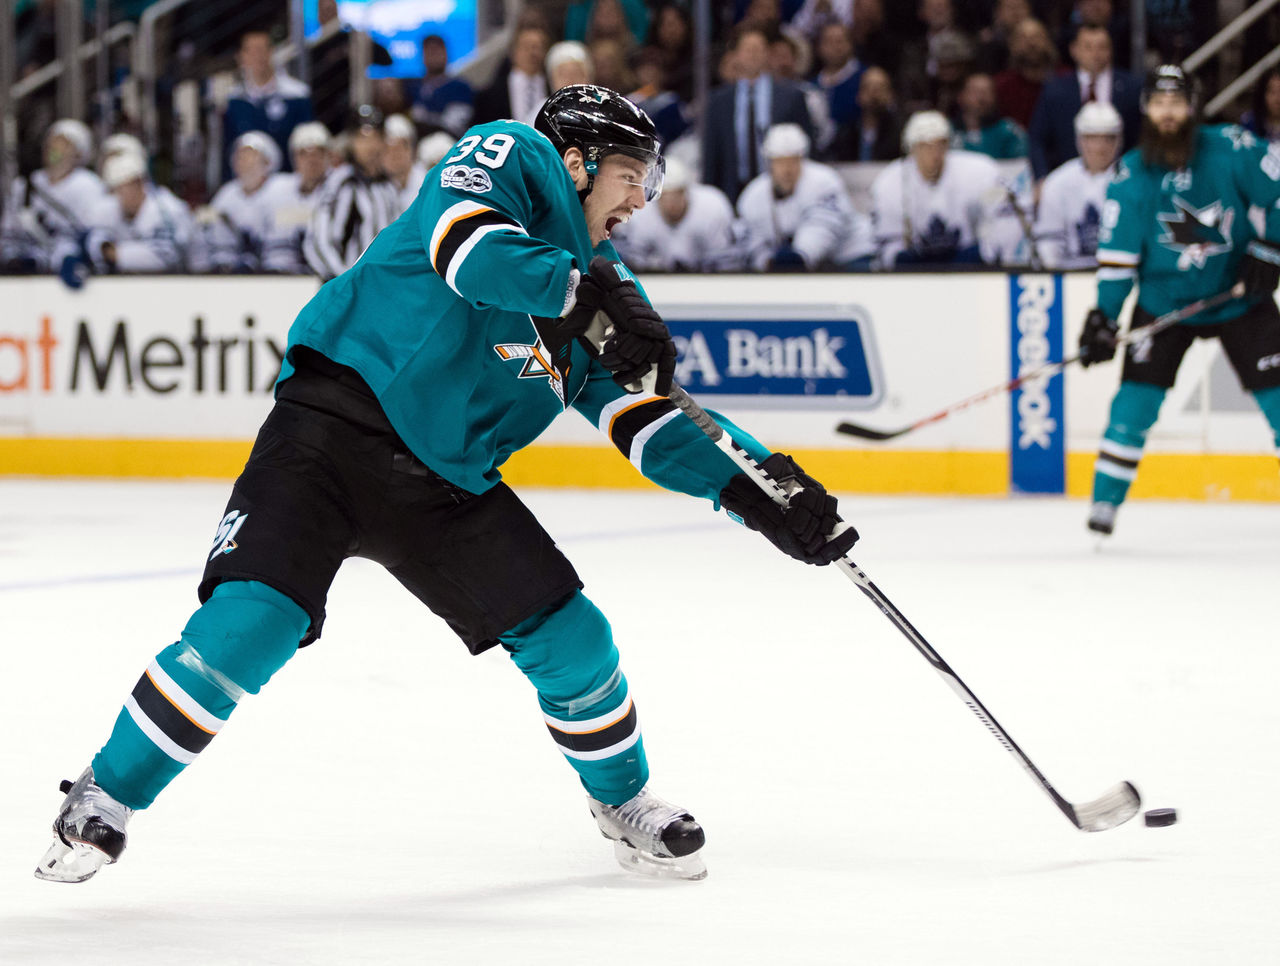 Cropped 2017 03 01t043015z 1322191019 nocid rtrmadp 3 nhl toronto maple leafs at san jose sharks